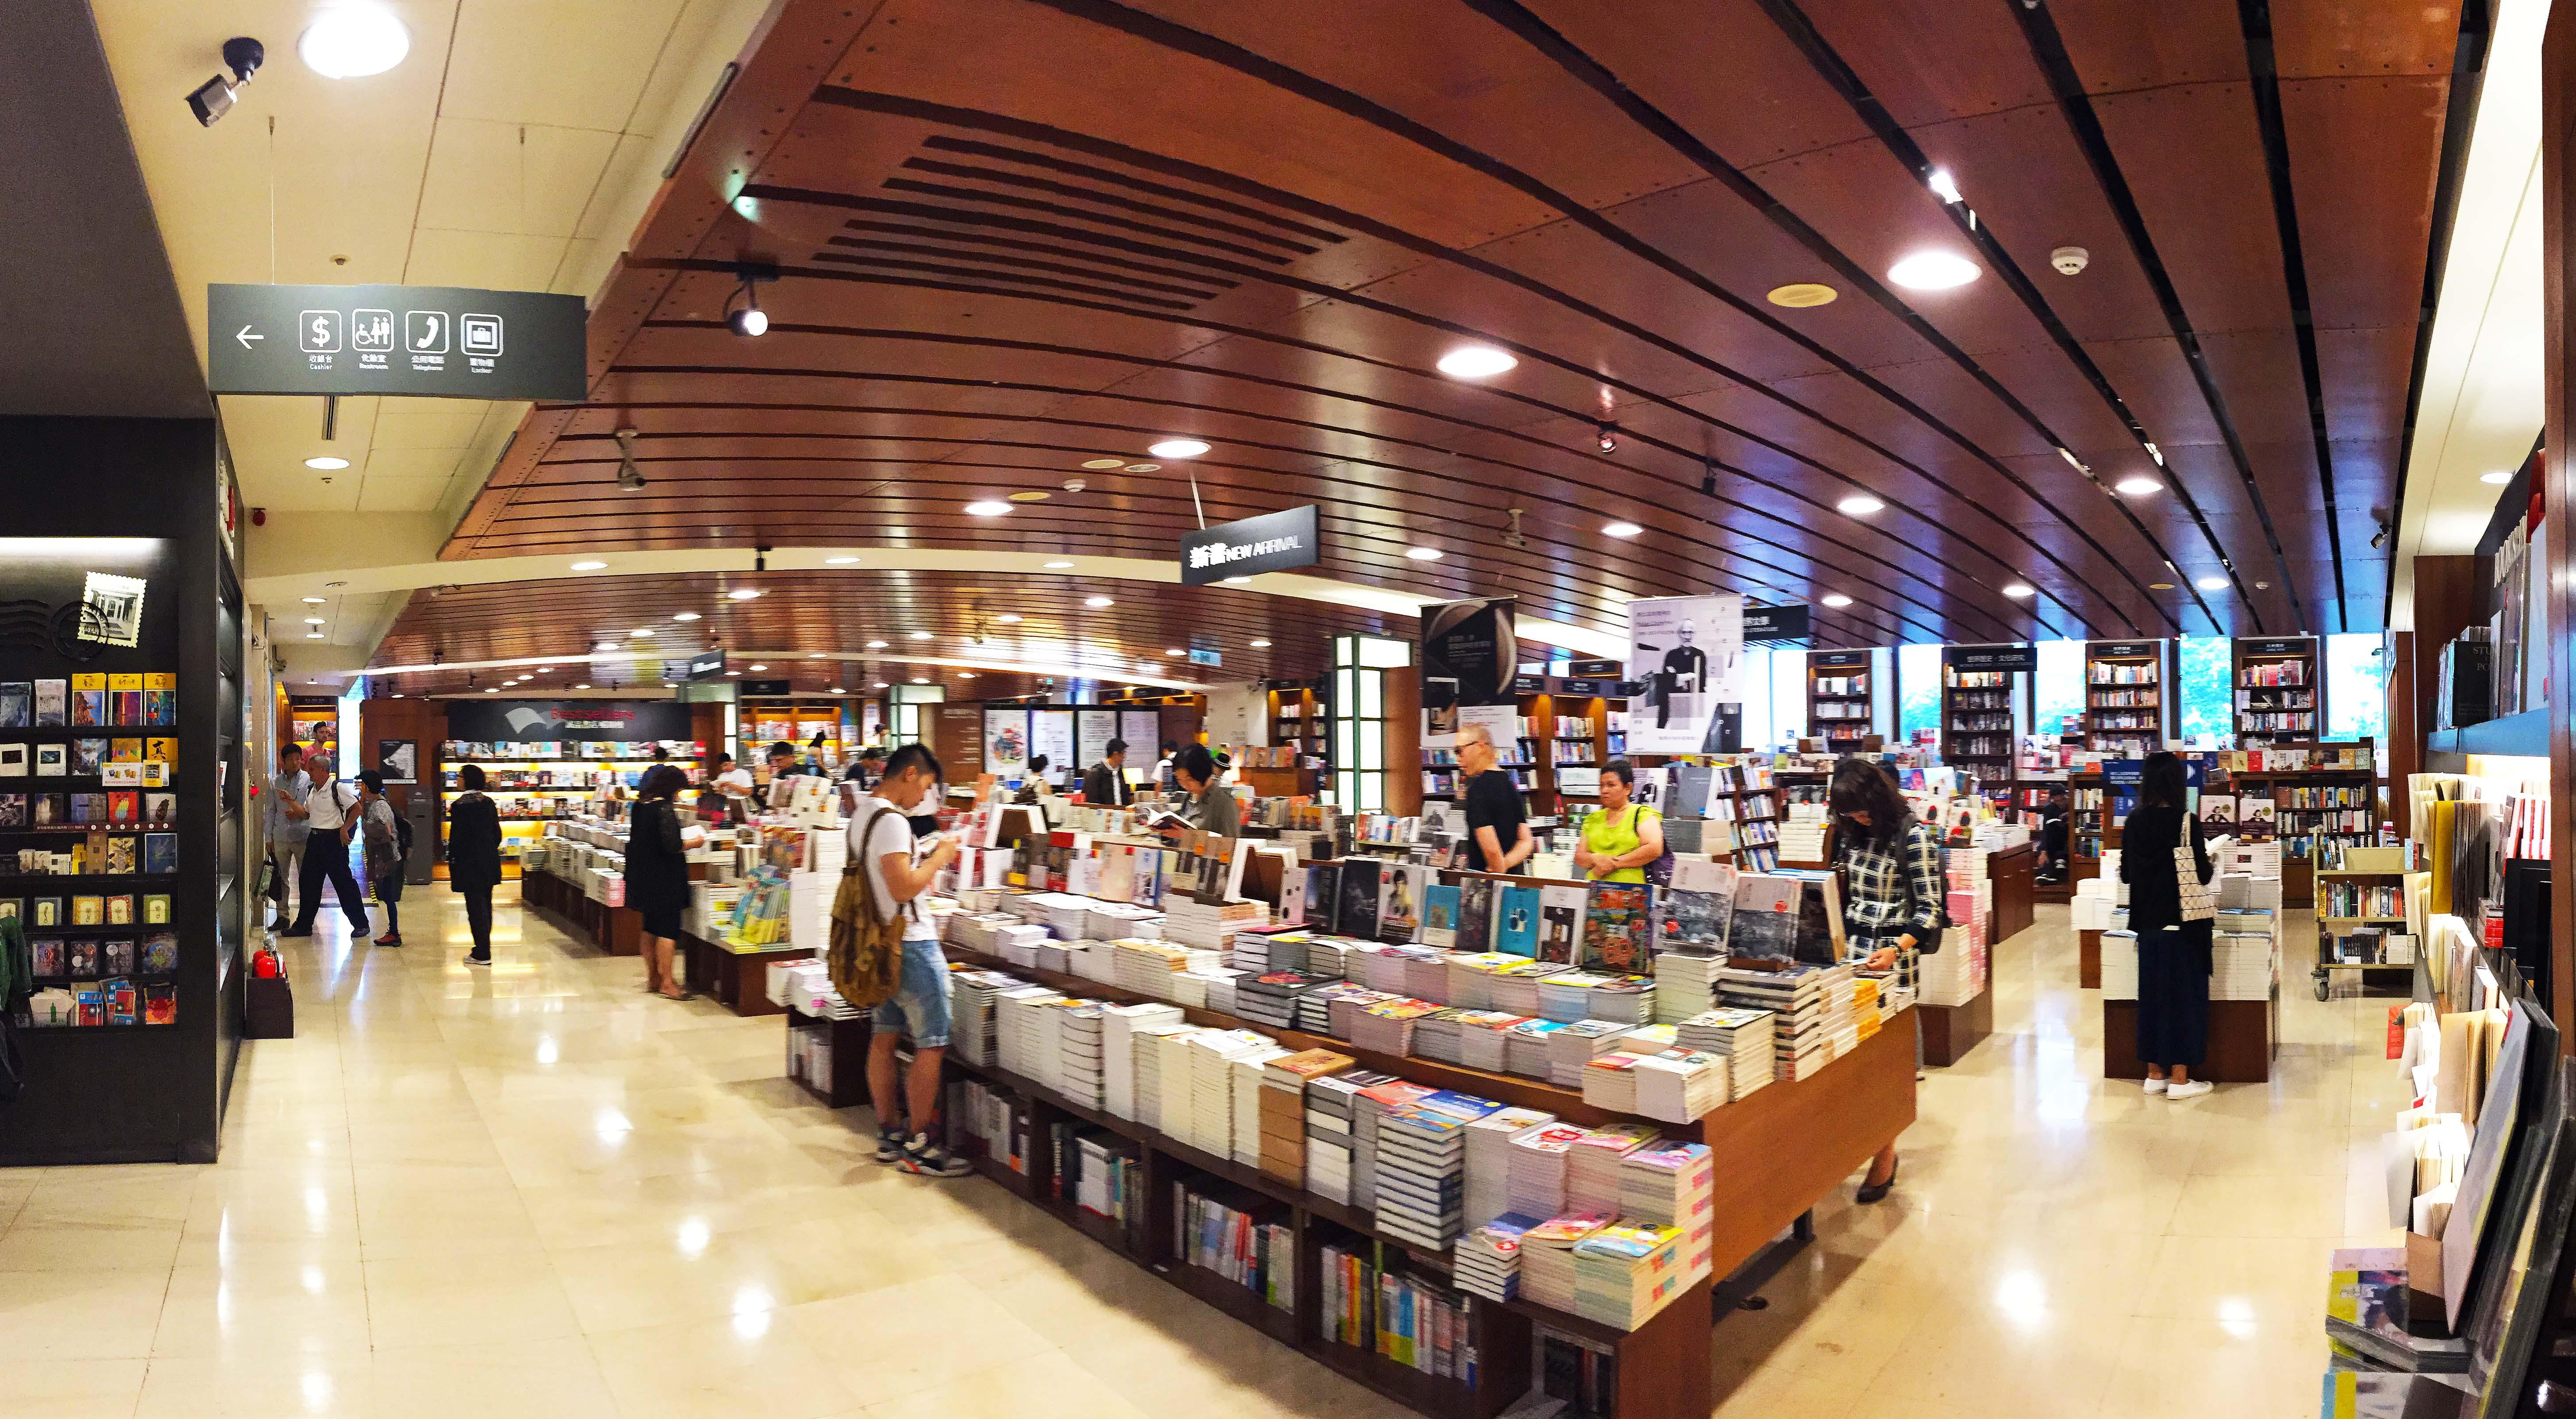 Department Store Floor Plan Eslite 24 Hour Bookstore 誠品24小時書店 Guide To Taipei Com